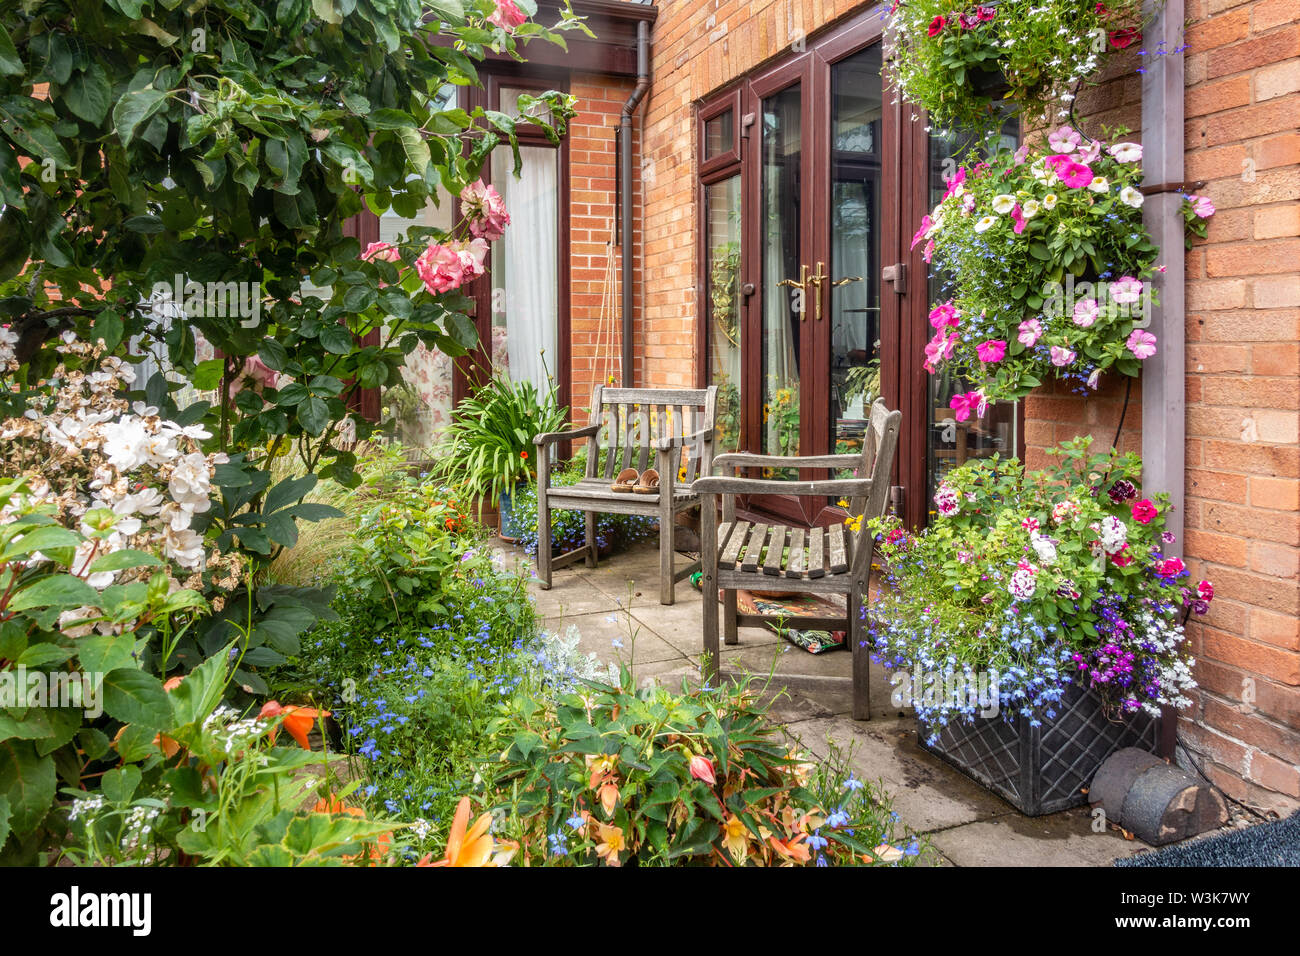 a-pair-of-wooden-chairs-in-a-corner-of-a-garden-W3K7WY.jpg